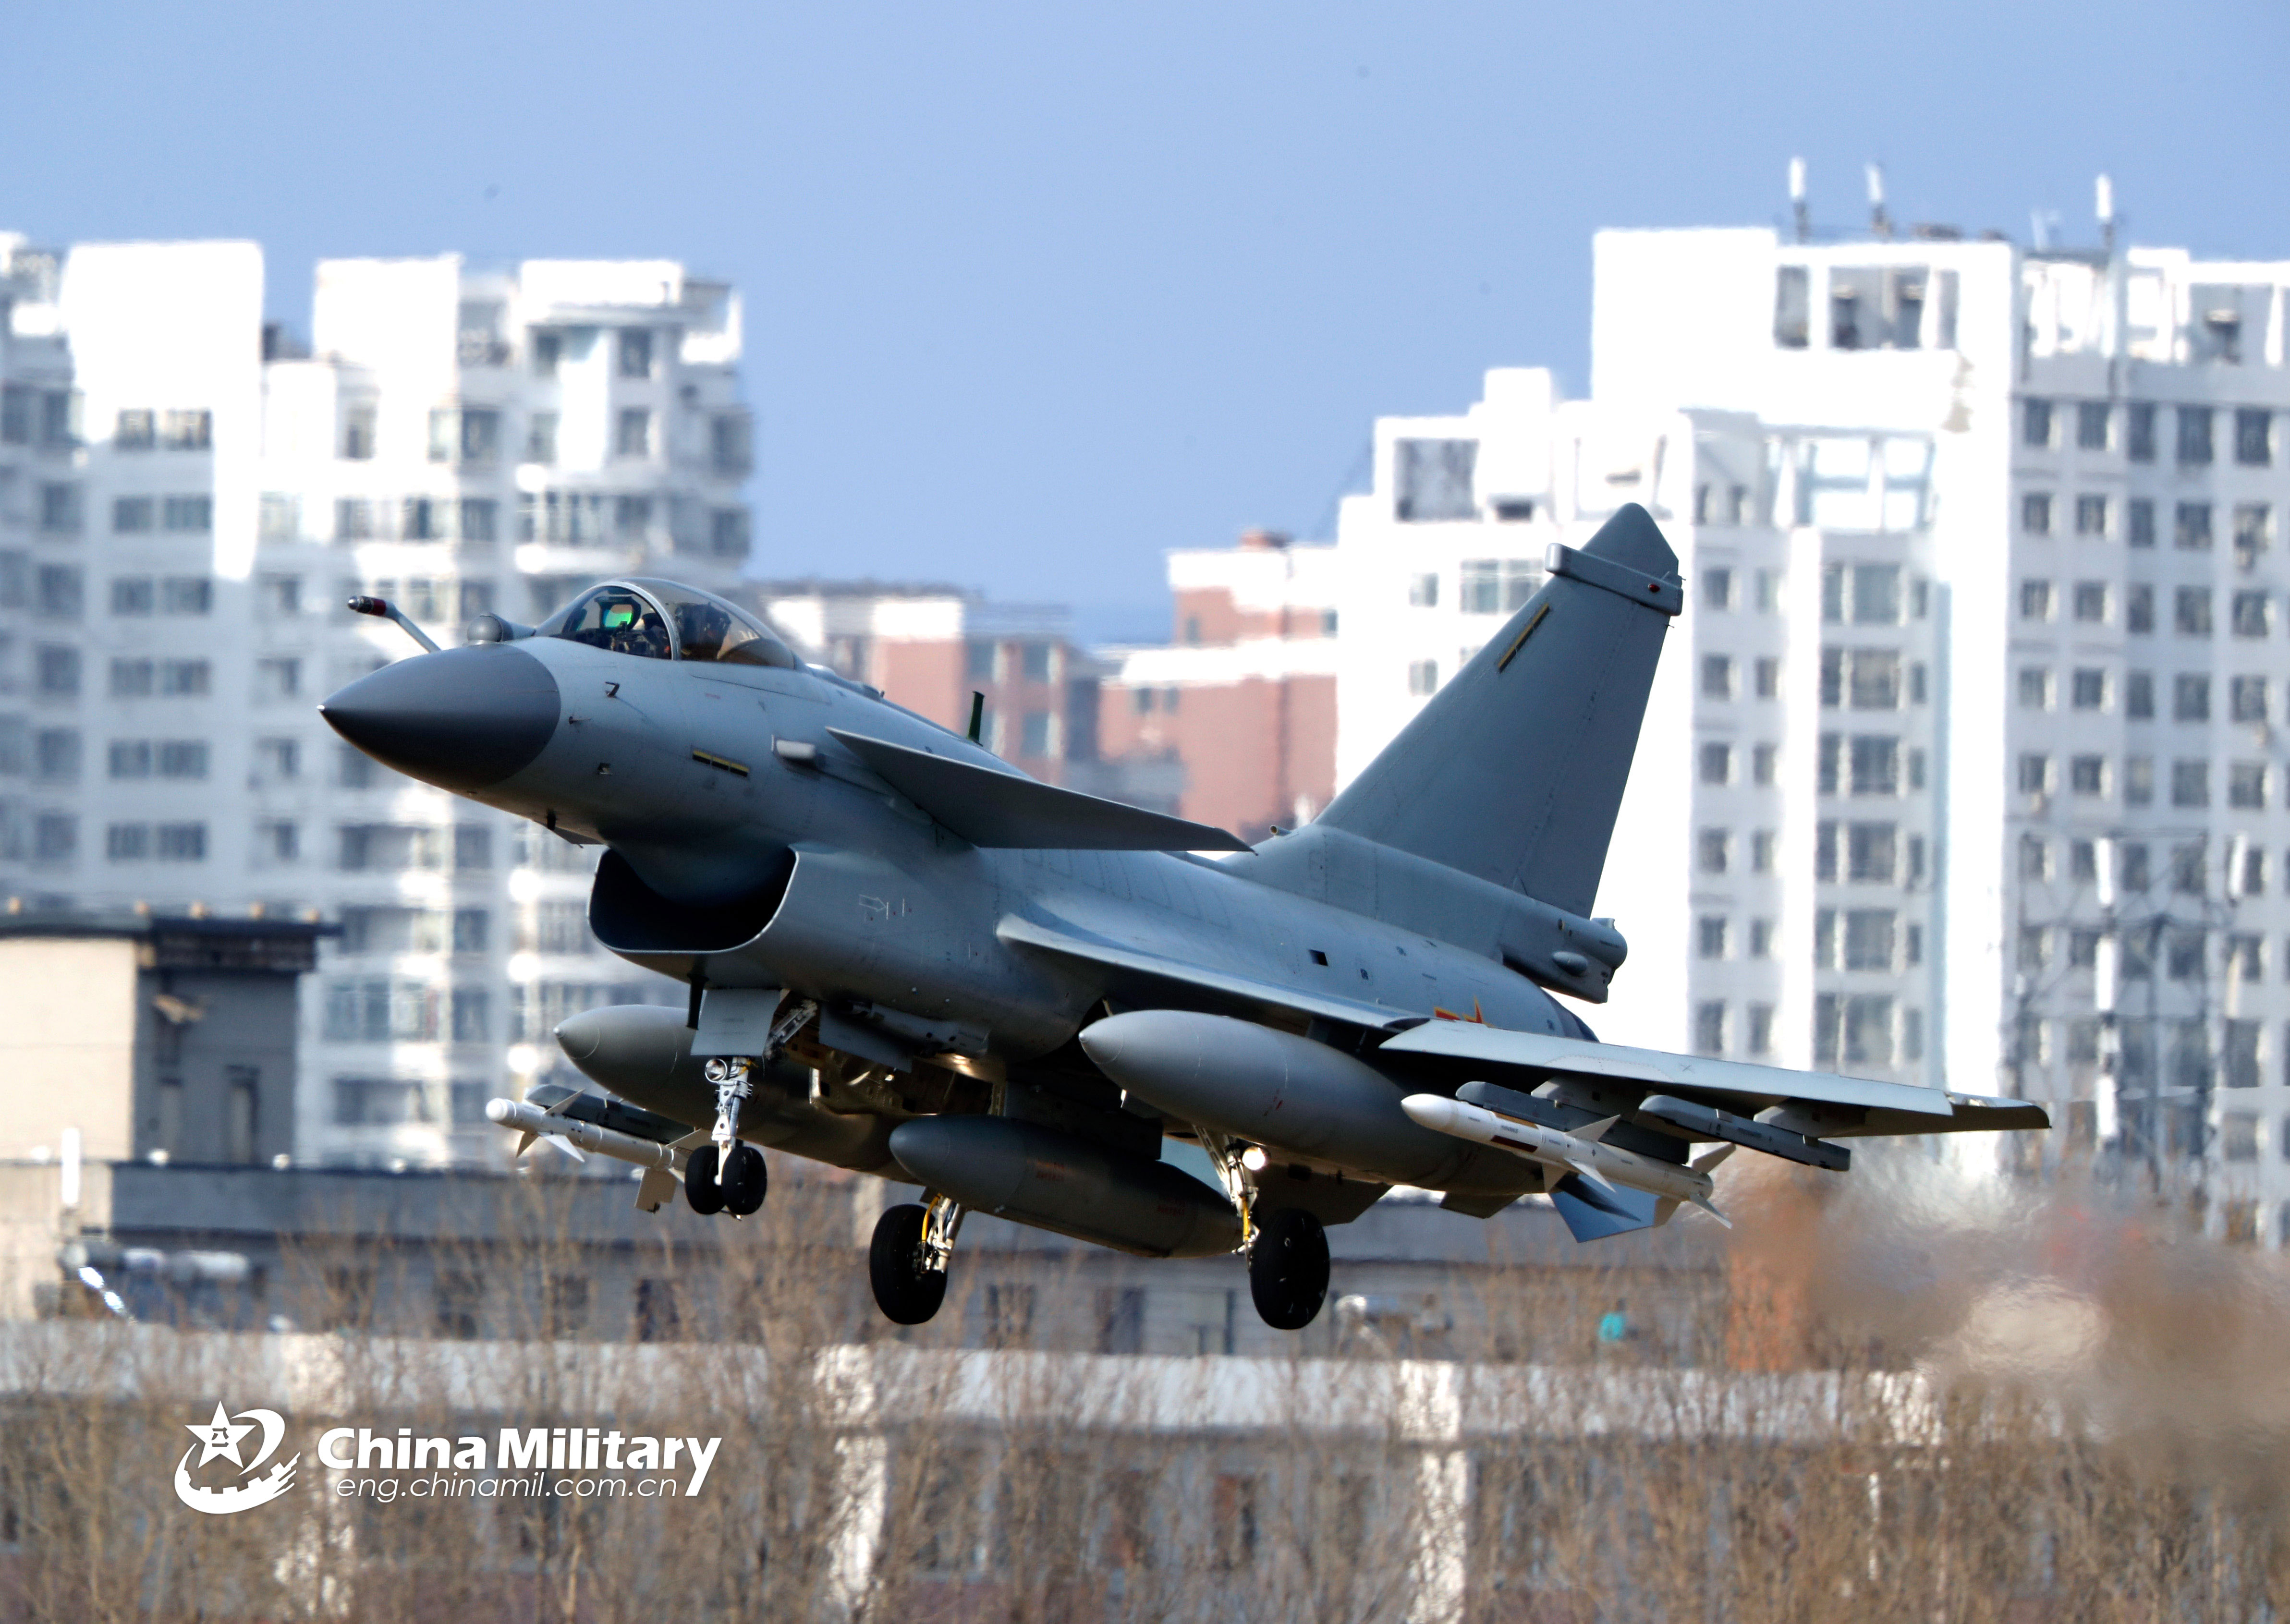 J-10 fighter jets take off - China Military